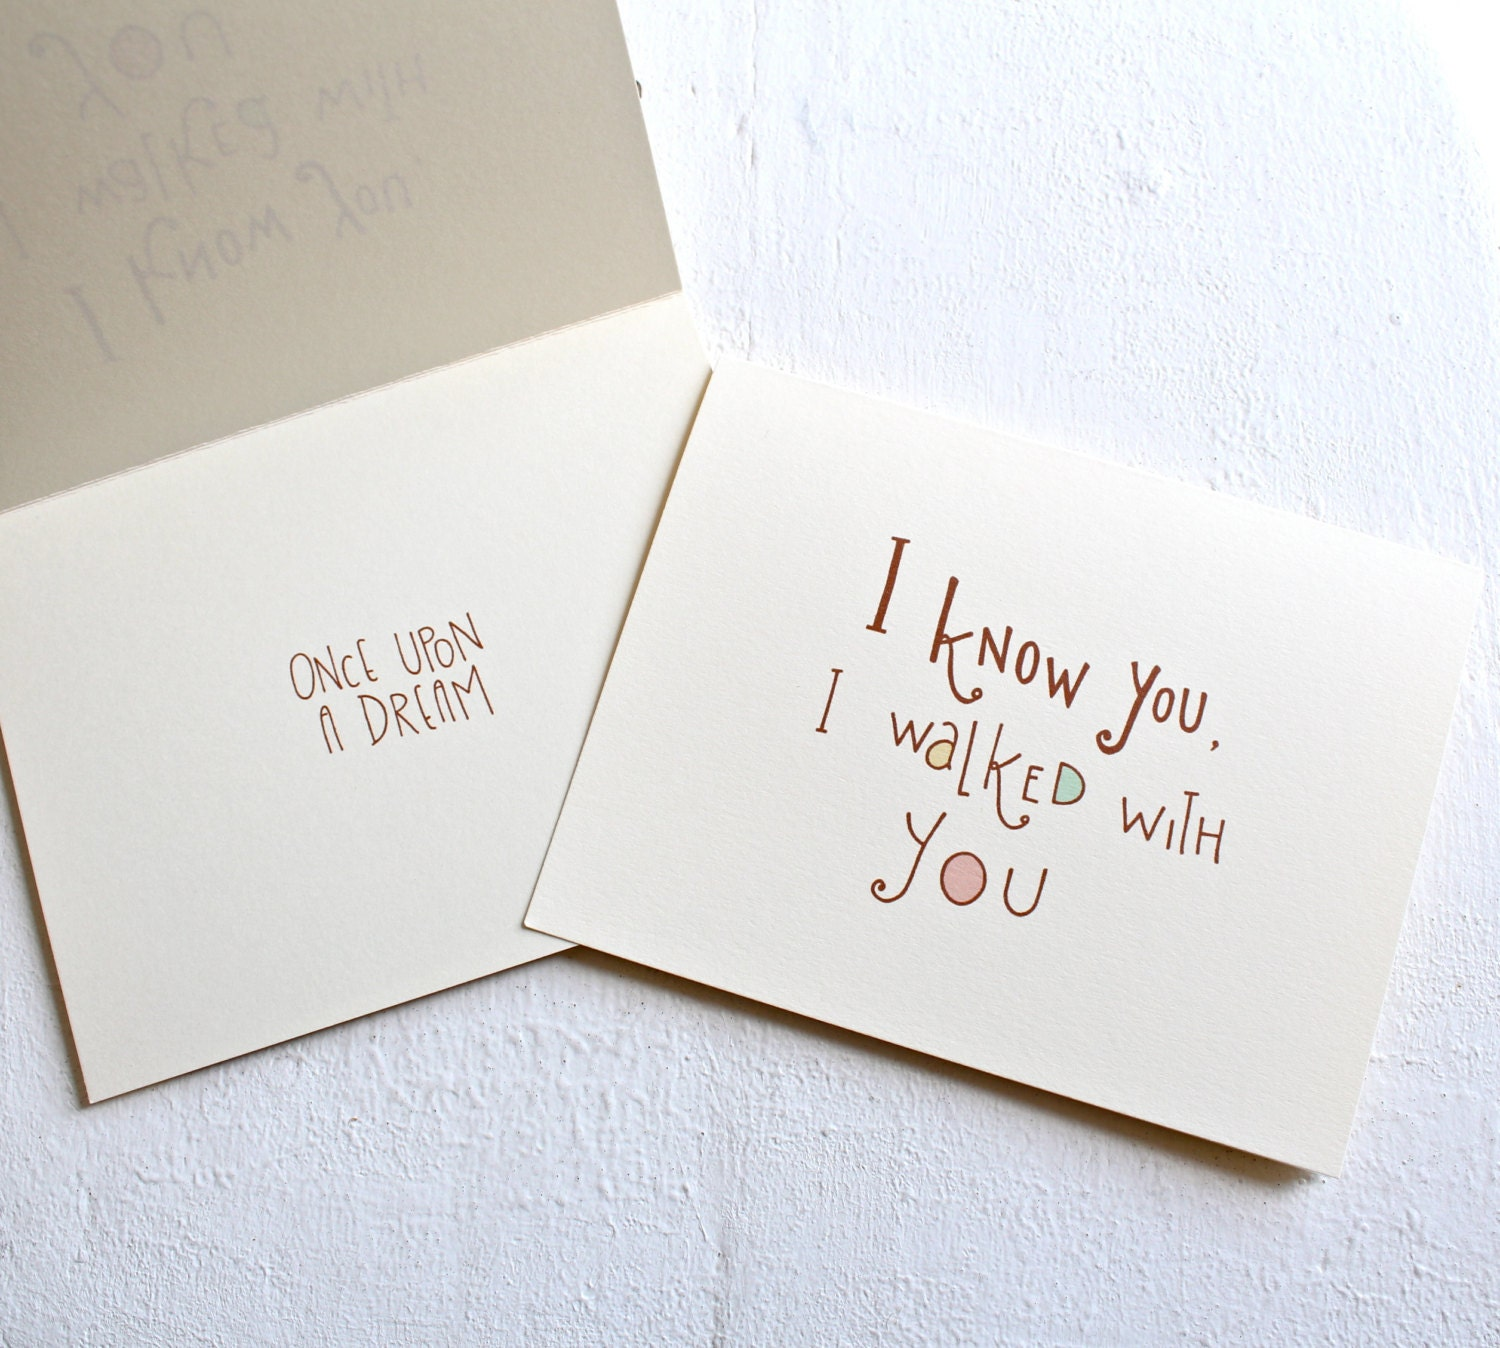 Love Quotes For Valentines Day Cards Love Quote Card I Know You I Walked With You Once Upon A